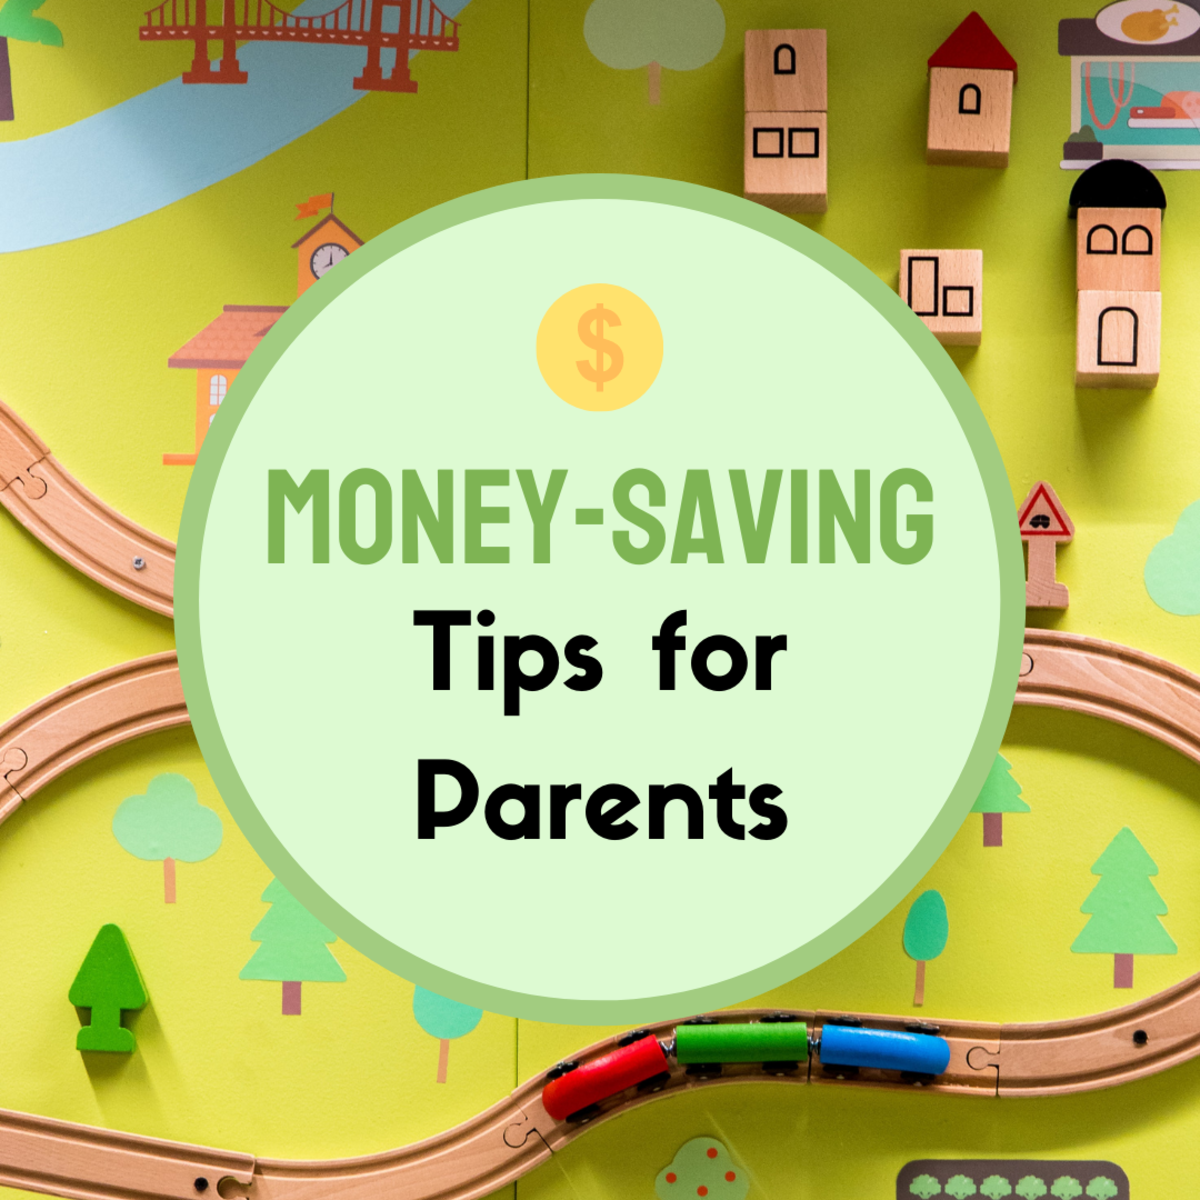 Some things are worth buying new for your kids, like a high-quality train set, but many others can be purchased used. Get advice on saving money on everything from baby formula to college.